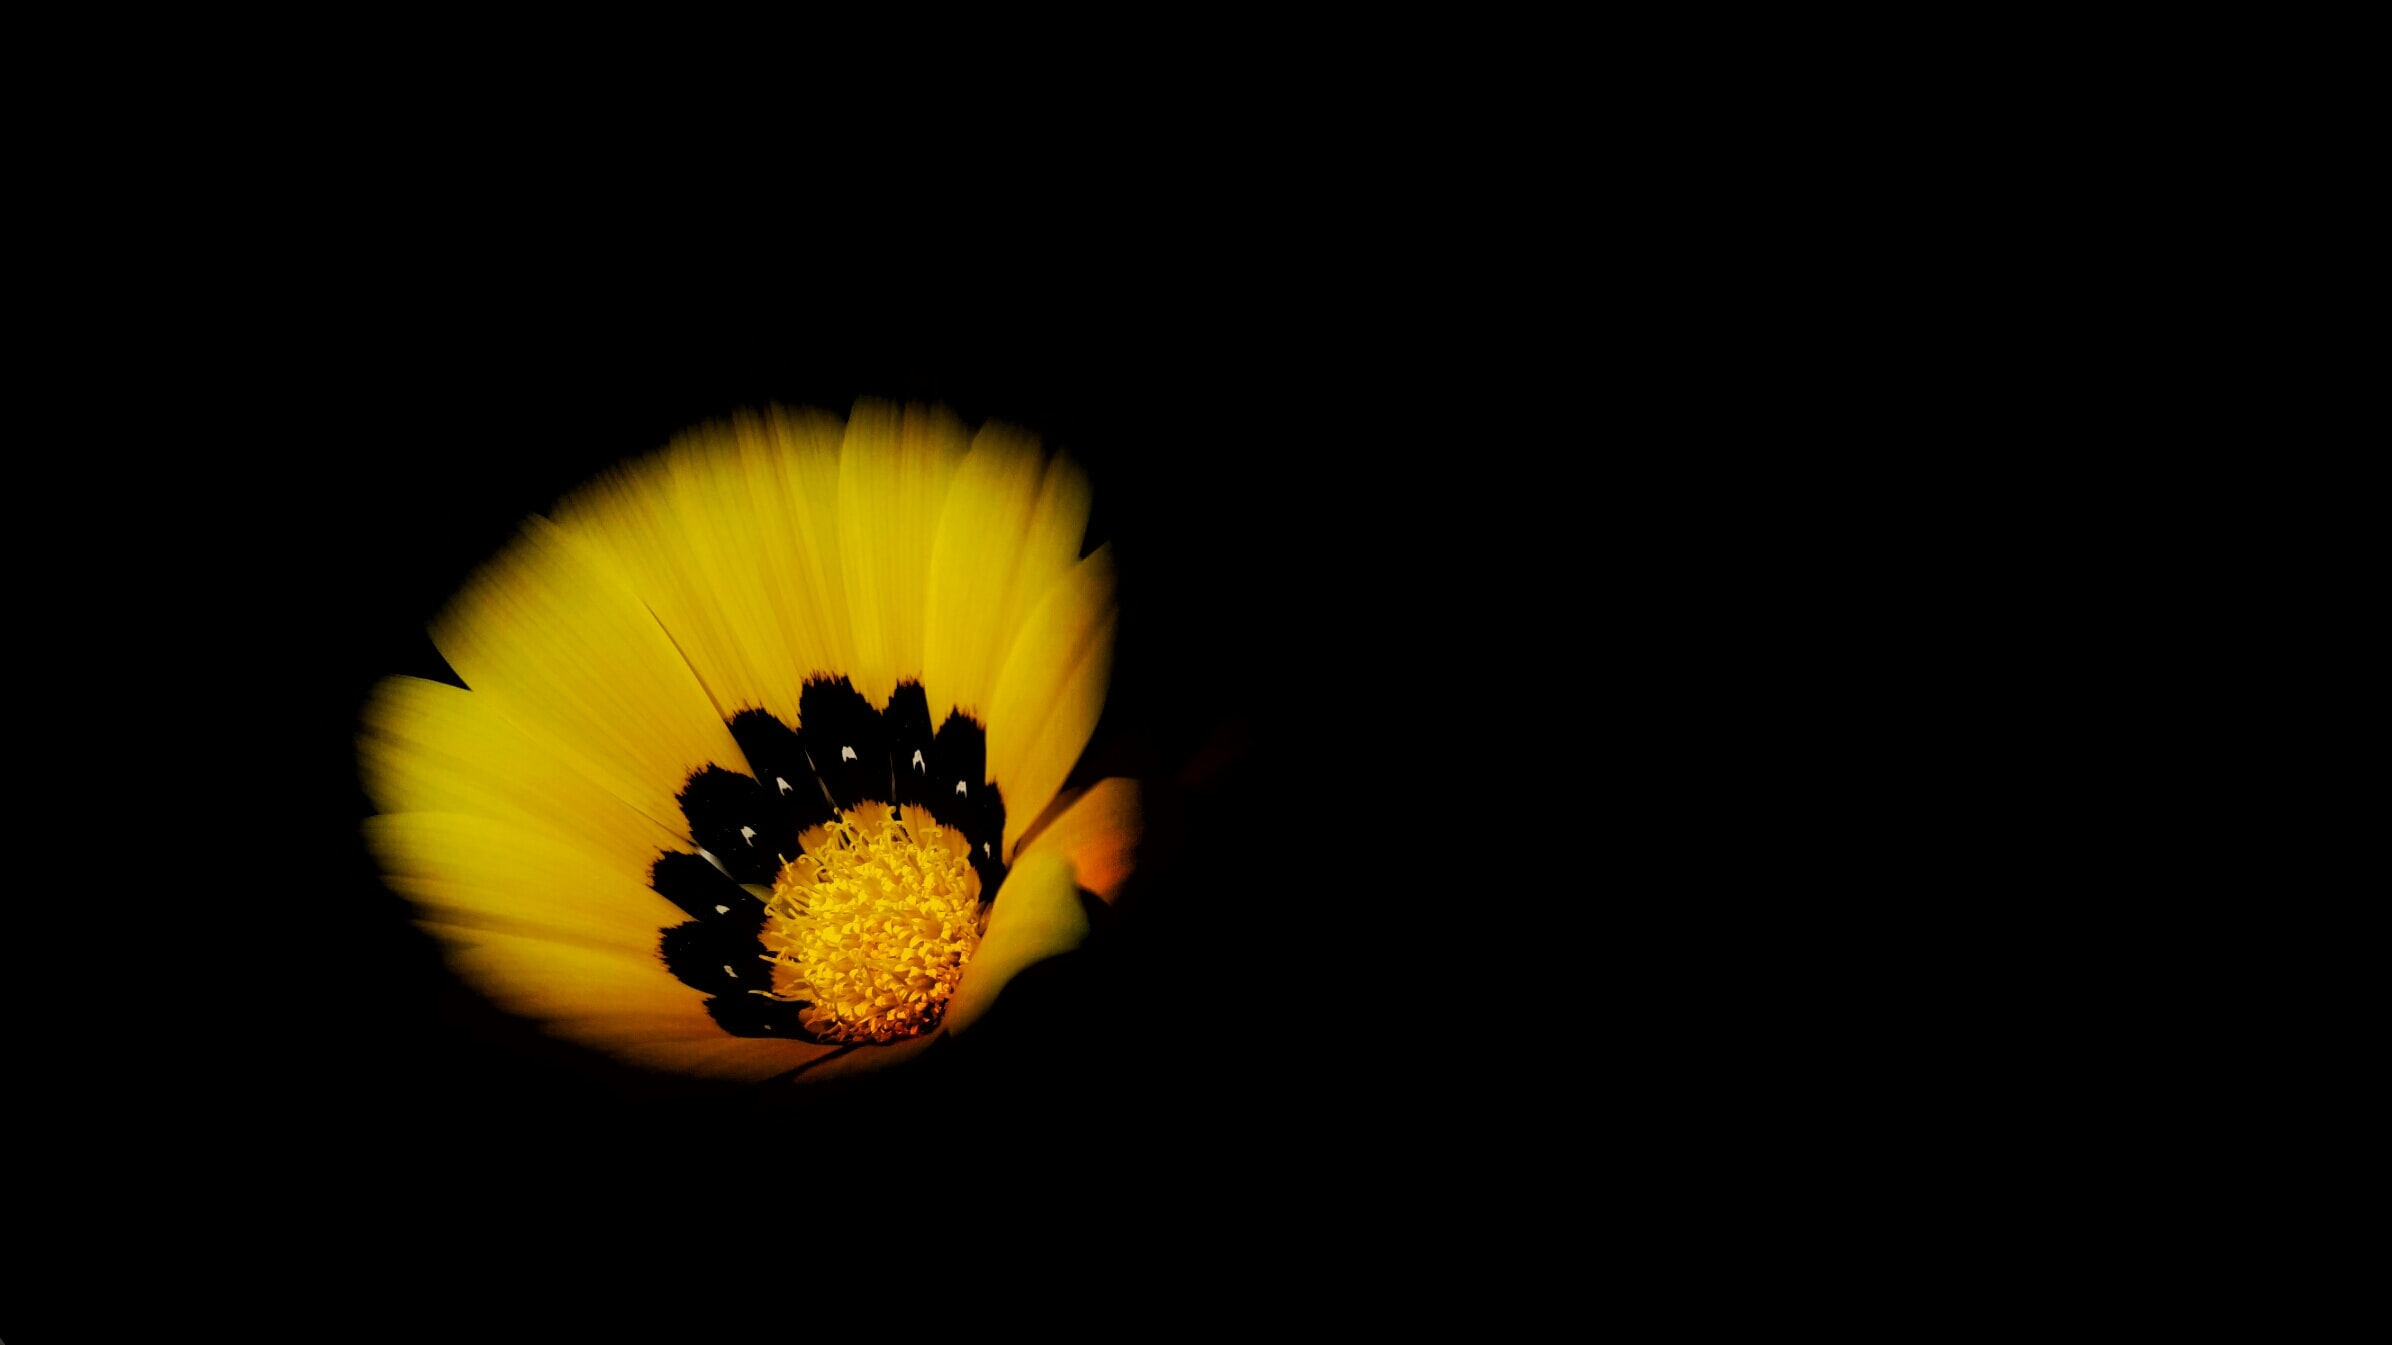 A close-up of a bright yellow flower against a black background